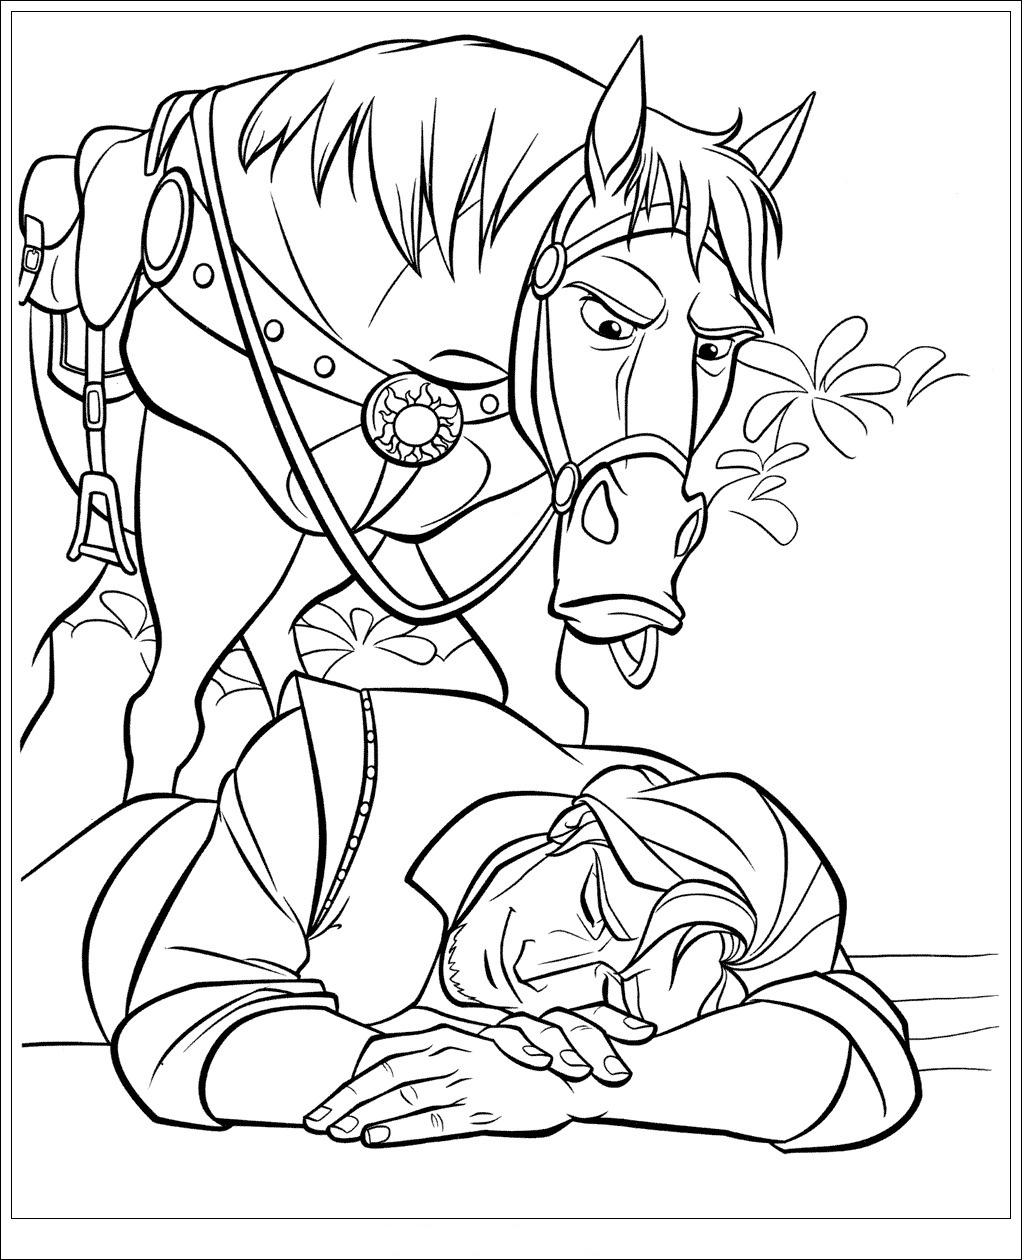 Flynn is sleeping Coloring Page